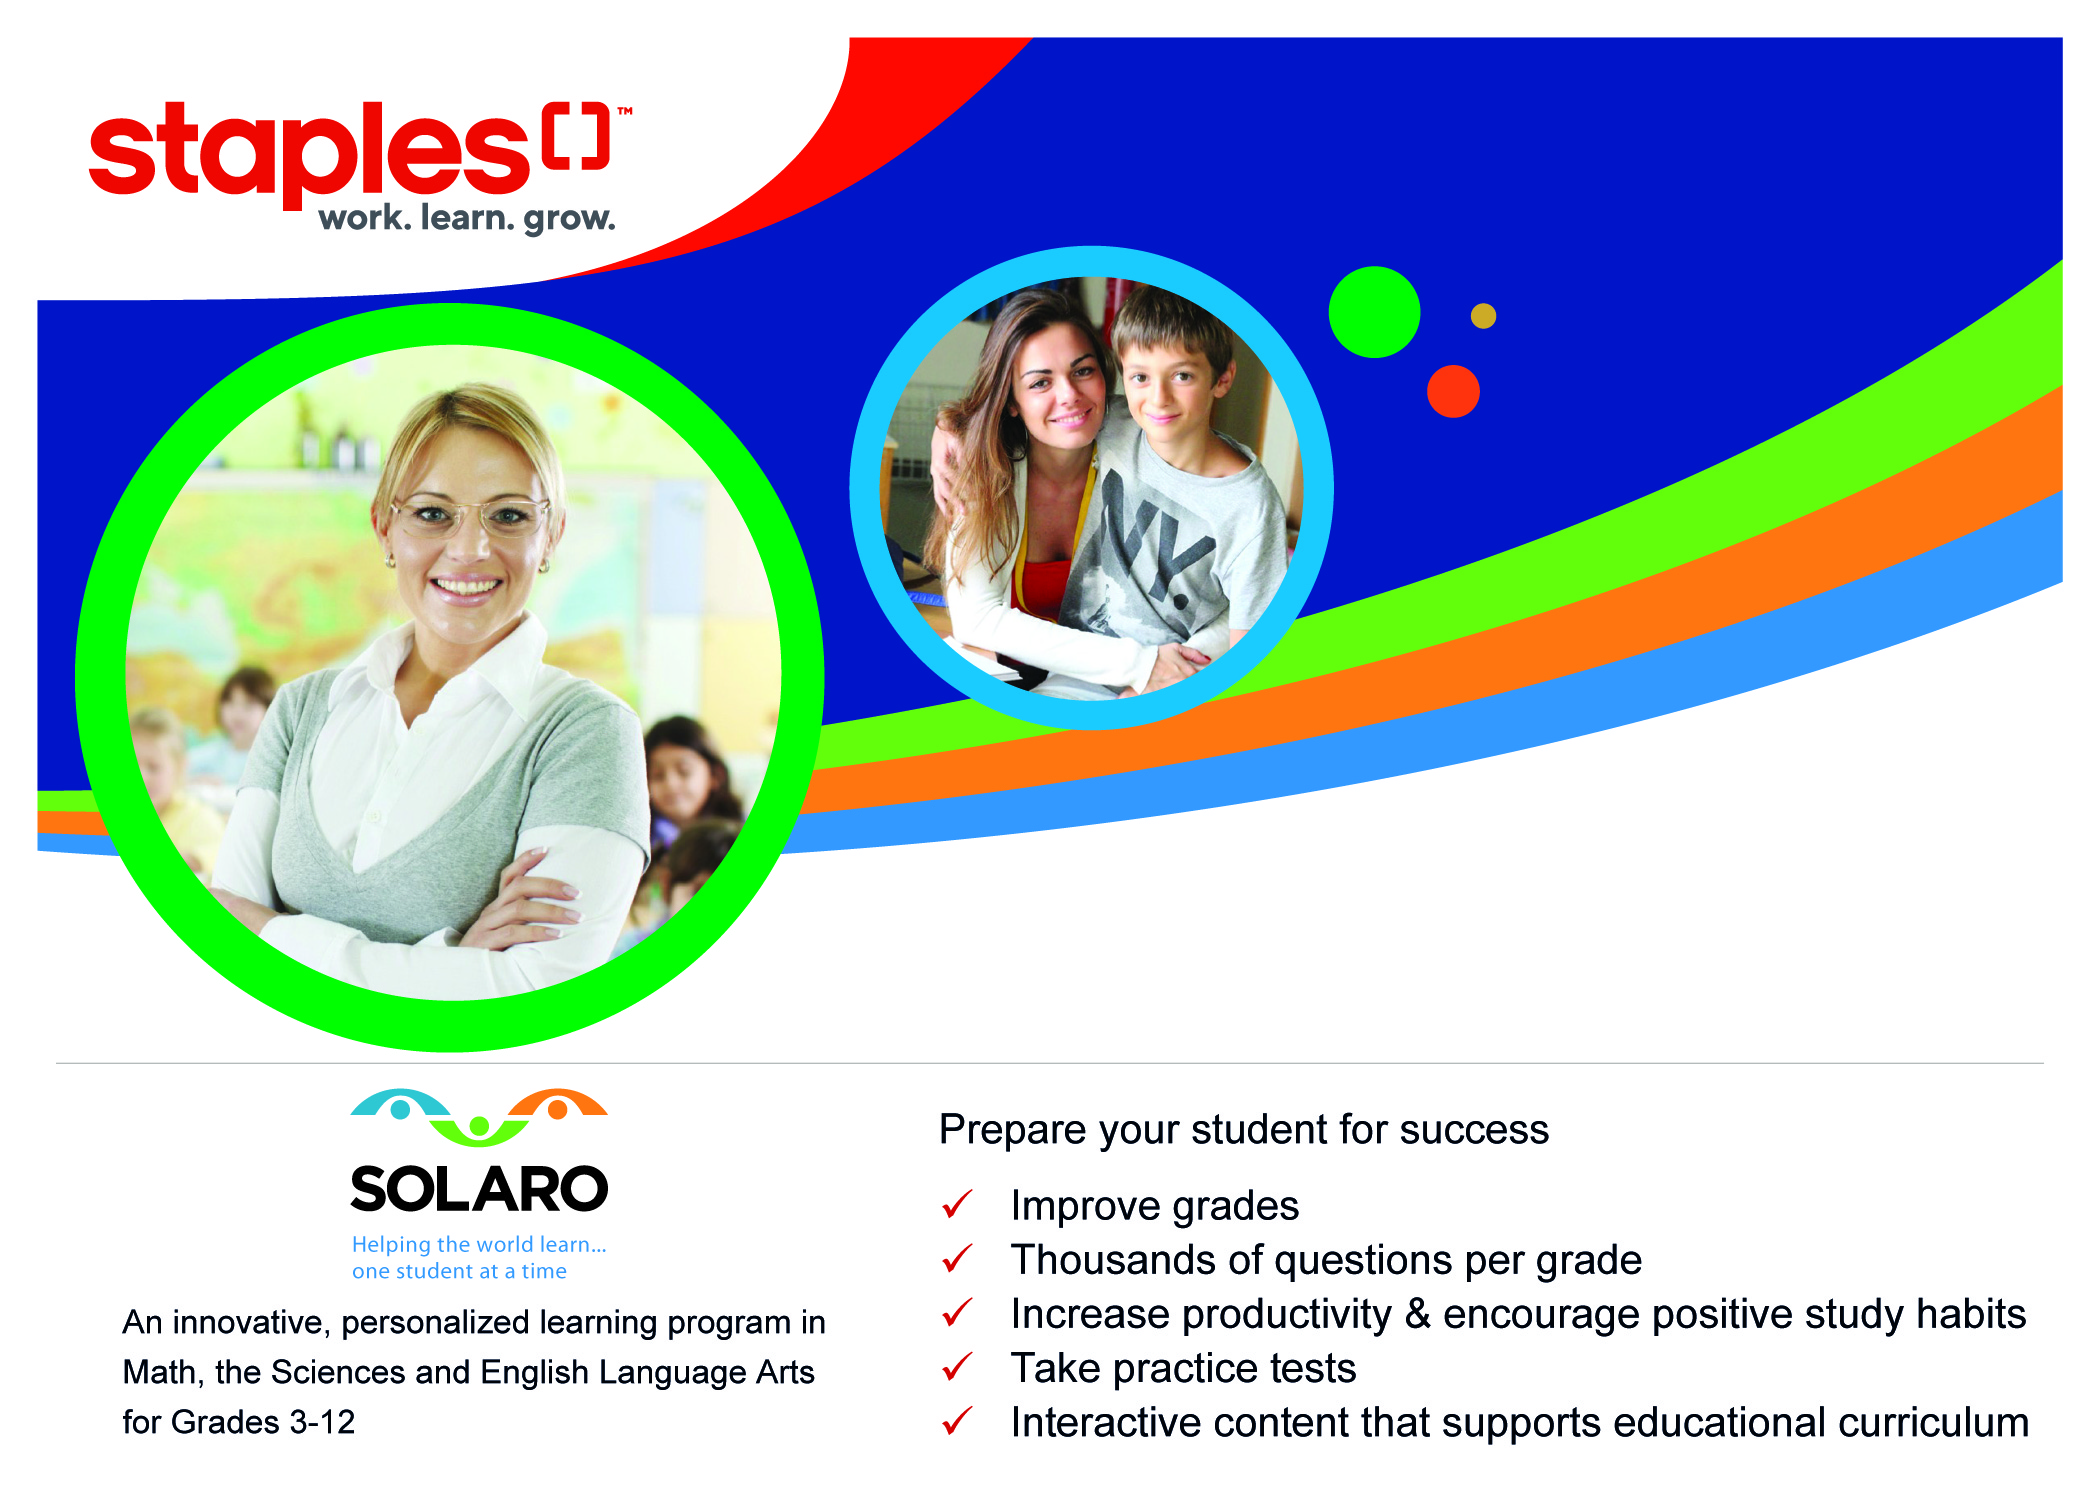 """Start studying faster with Staples! - Sign up for a one-year subscription and Save 75%. Please click on """"Get Your Account"""" and add SOLARO to your cart. When you reach the checkout page, please use the discount code: STAPLES2019."""